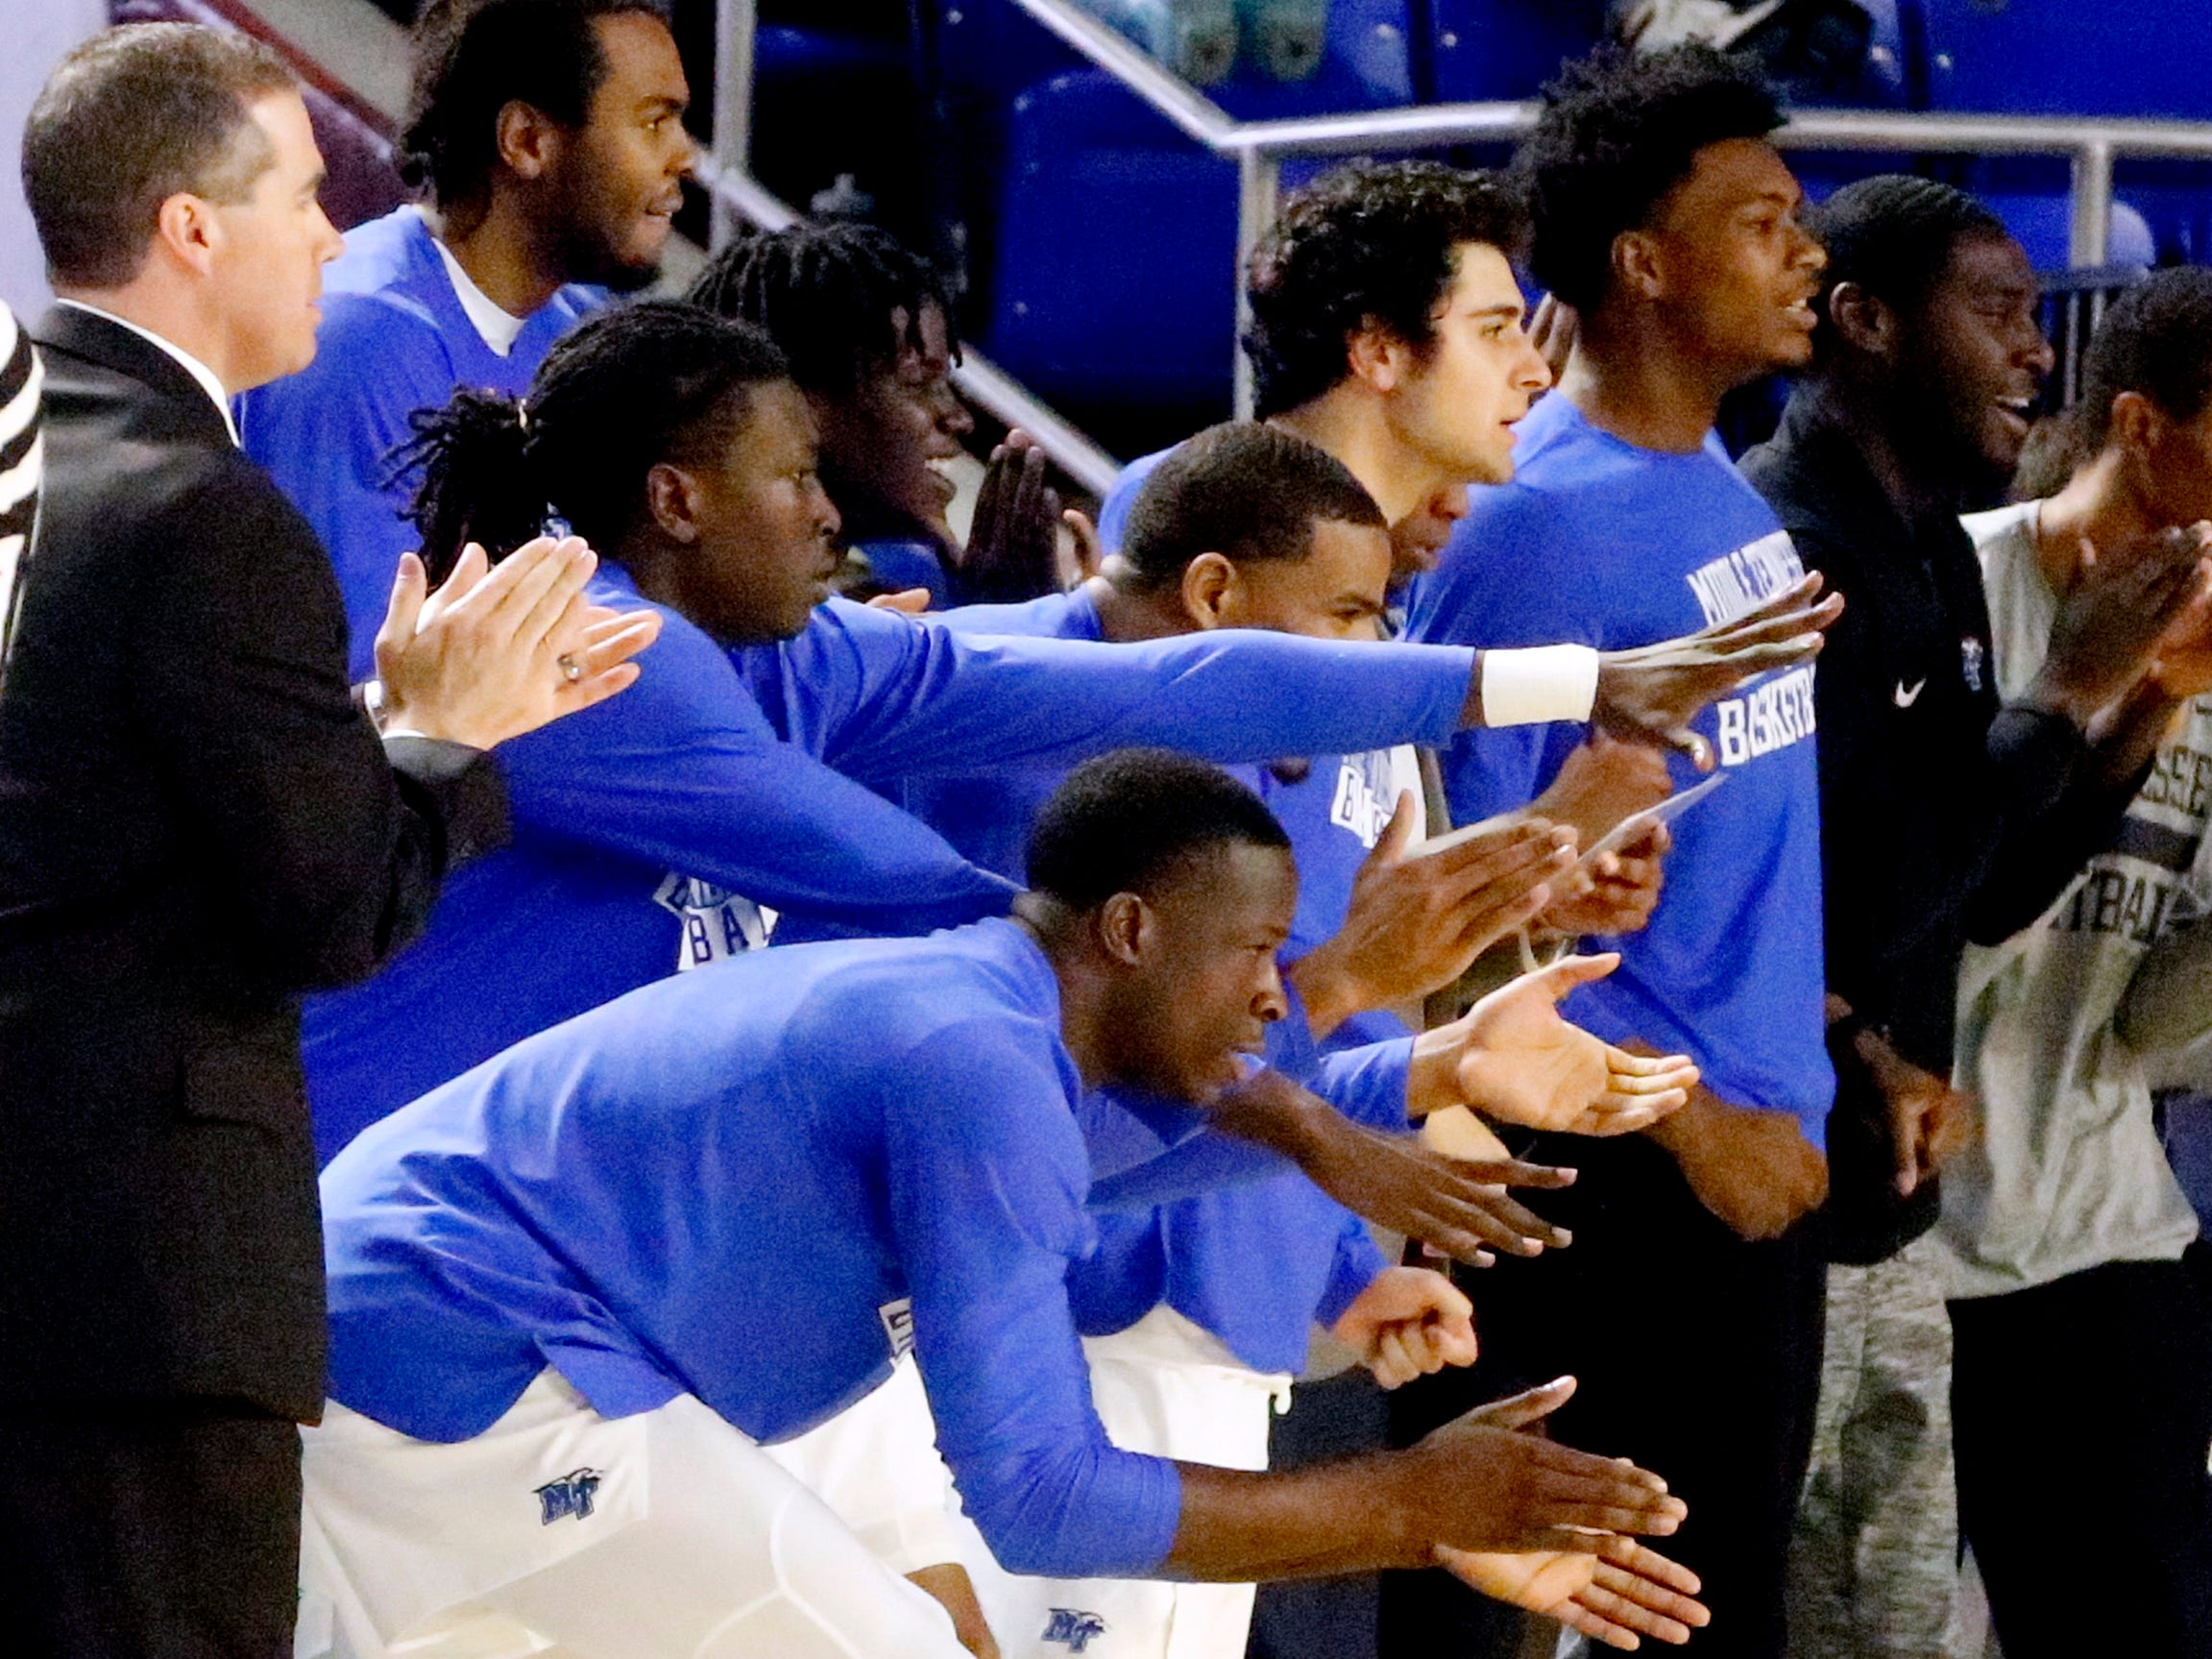 The MTSU bench cheers on their players after shooting a three point basket on Thursday Jan. 17, 2019, against UTSA.